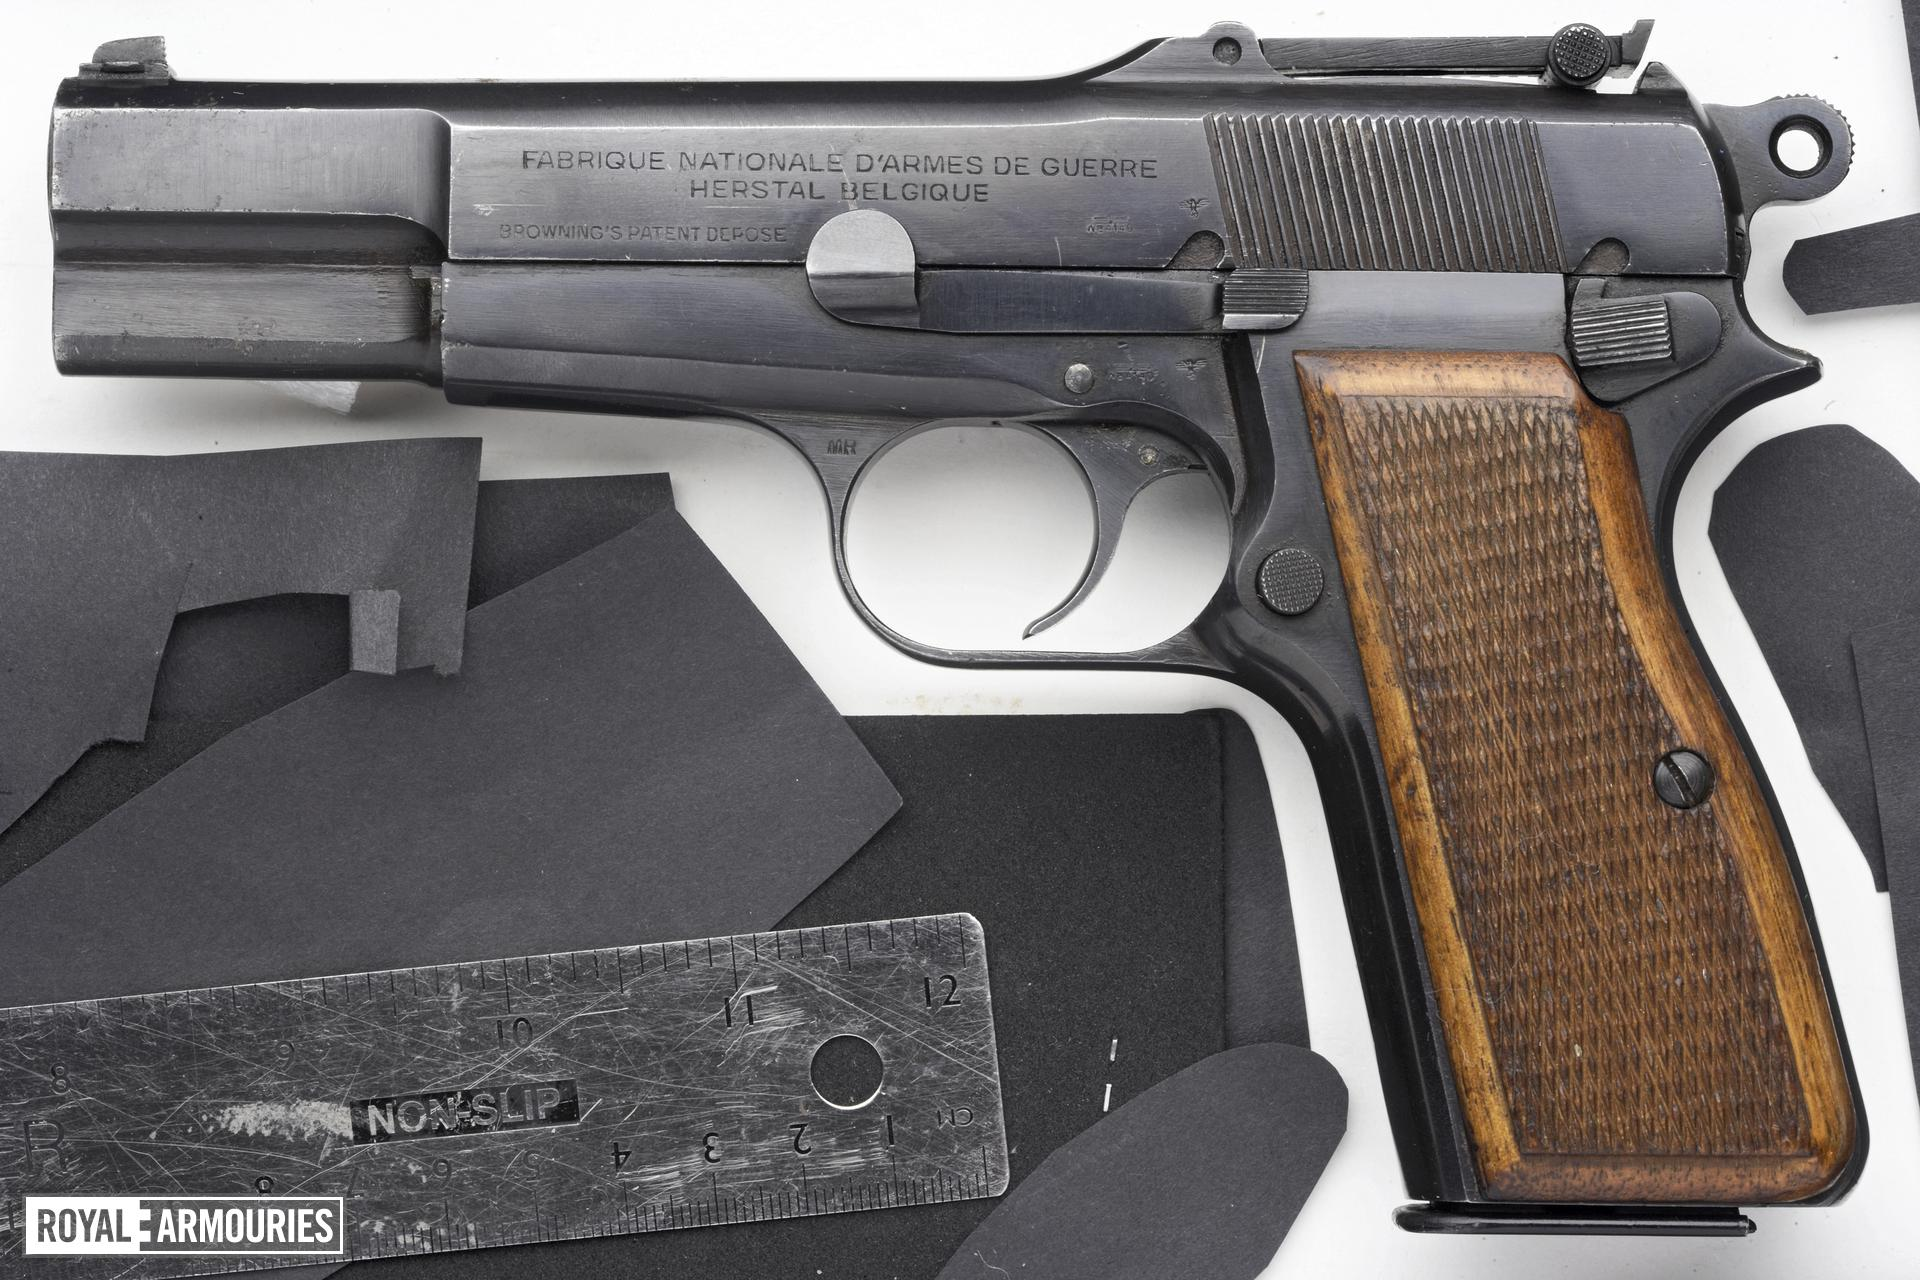 Centrefire self-loading pistol - Browning Model 35 HP